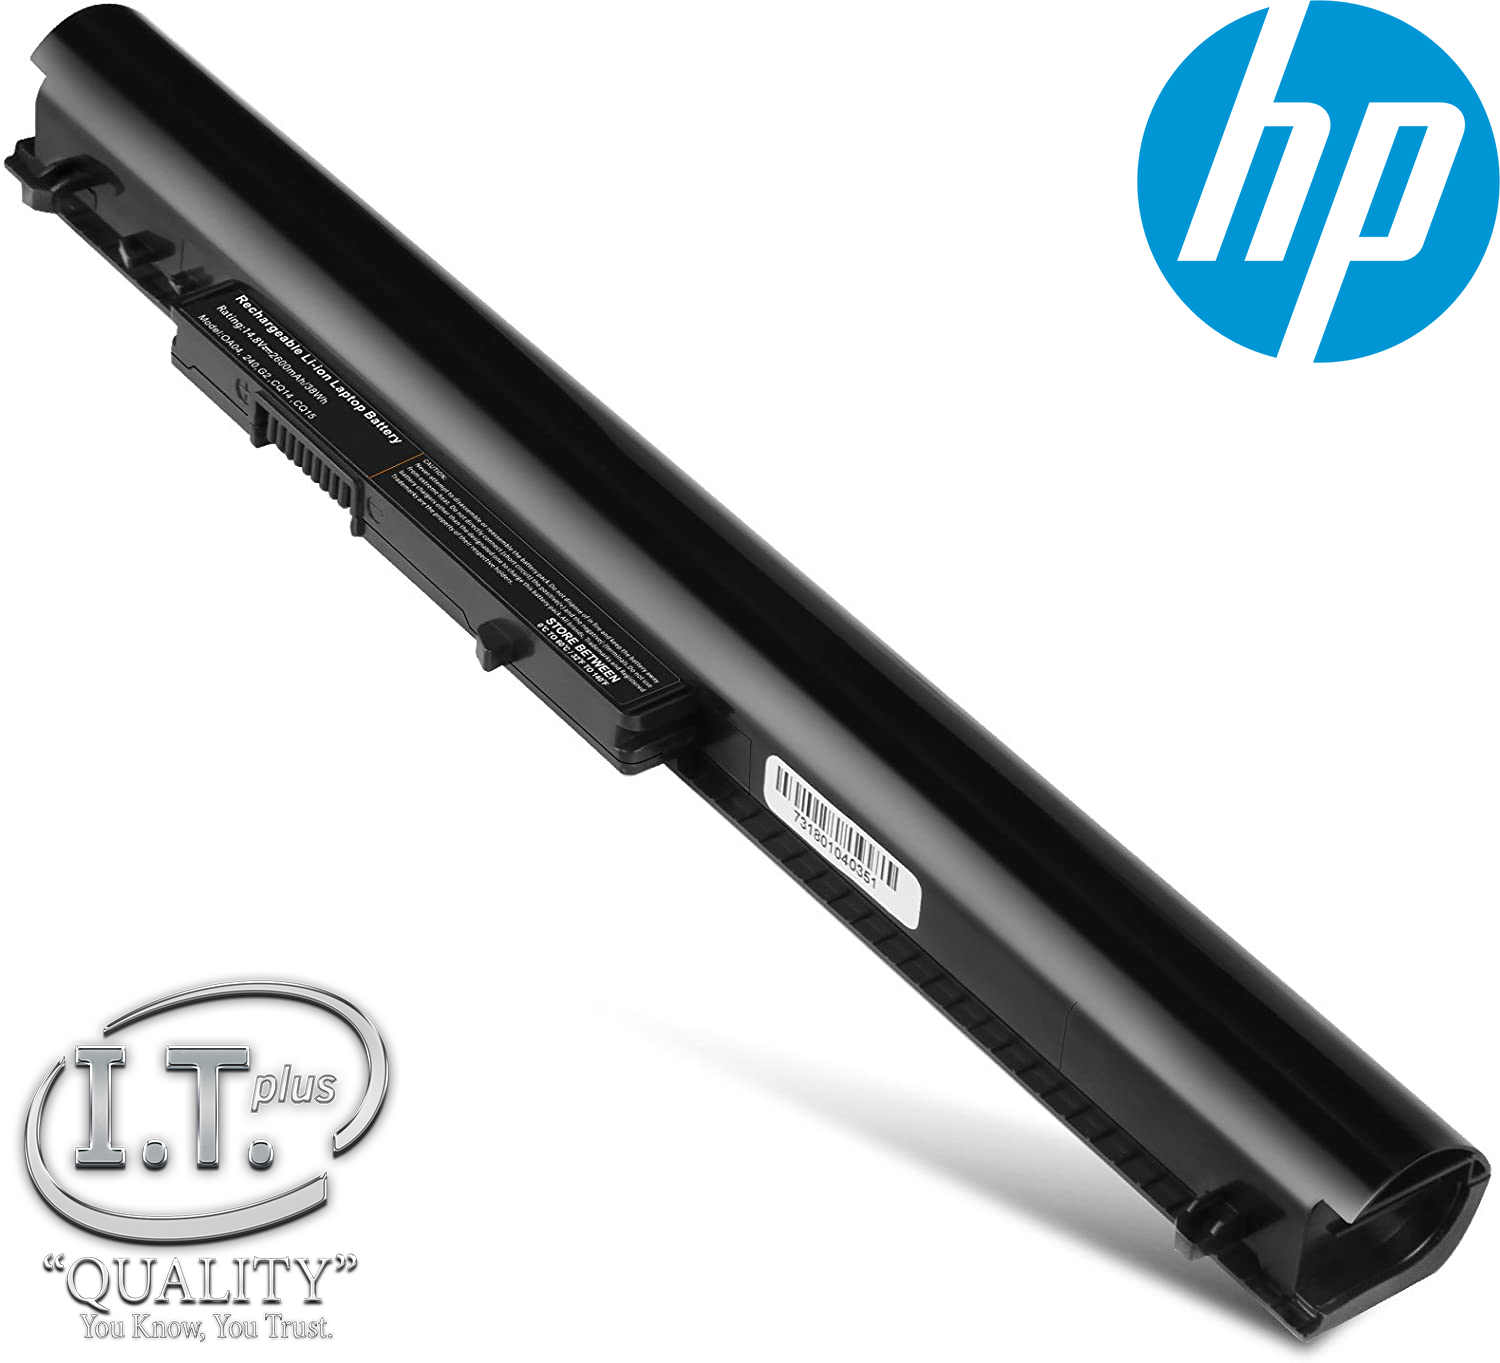 New Genuine OA04 Laptop Battery for HP 740715-001 746458-421 746641-001 751906-541 OA03 Sale Trinidad